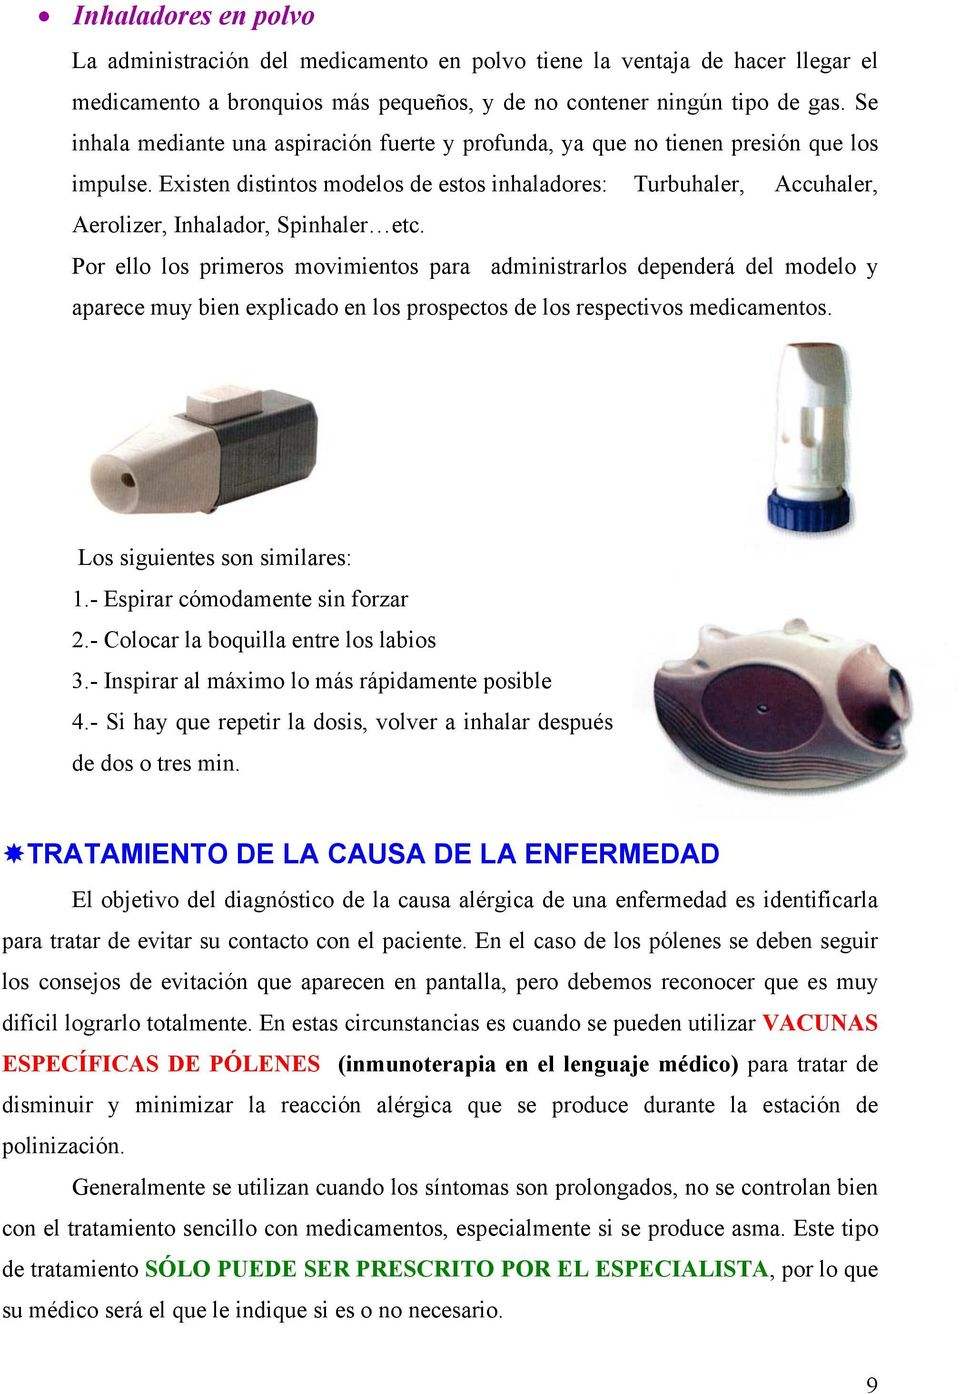 Existen distintos modelos de estos inhaladores: Turbuhaler, Accuhaler, Aerolizer, Inhalador, Spinhaler etc.